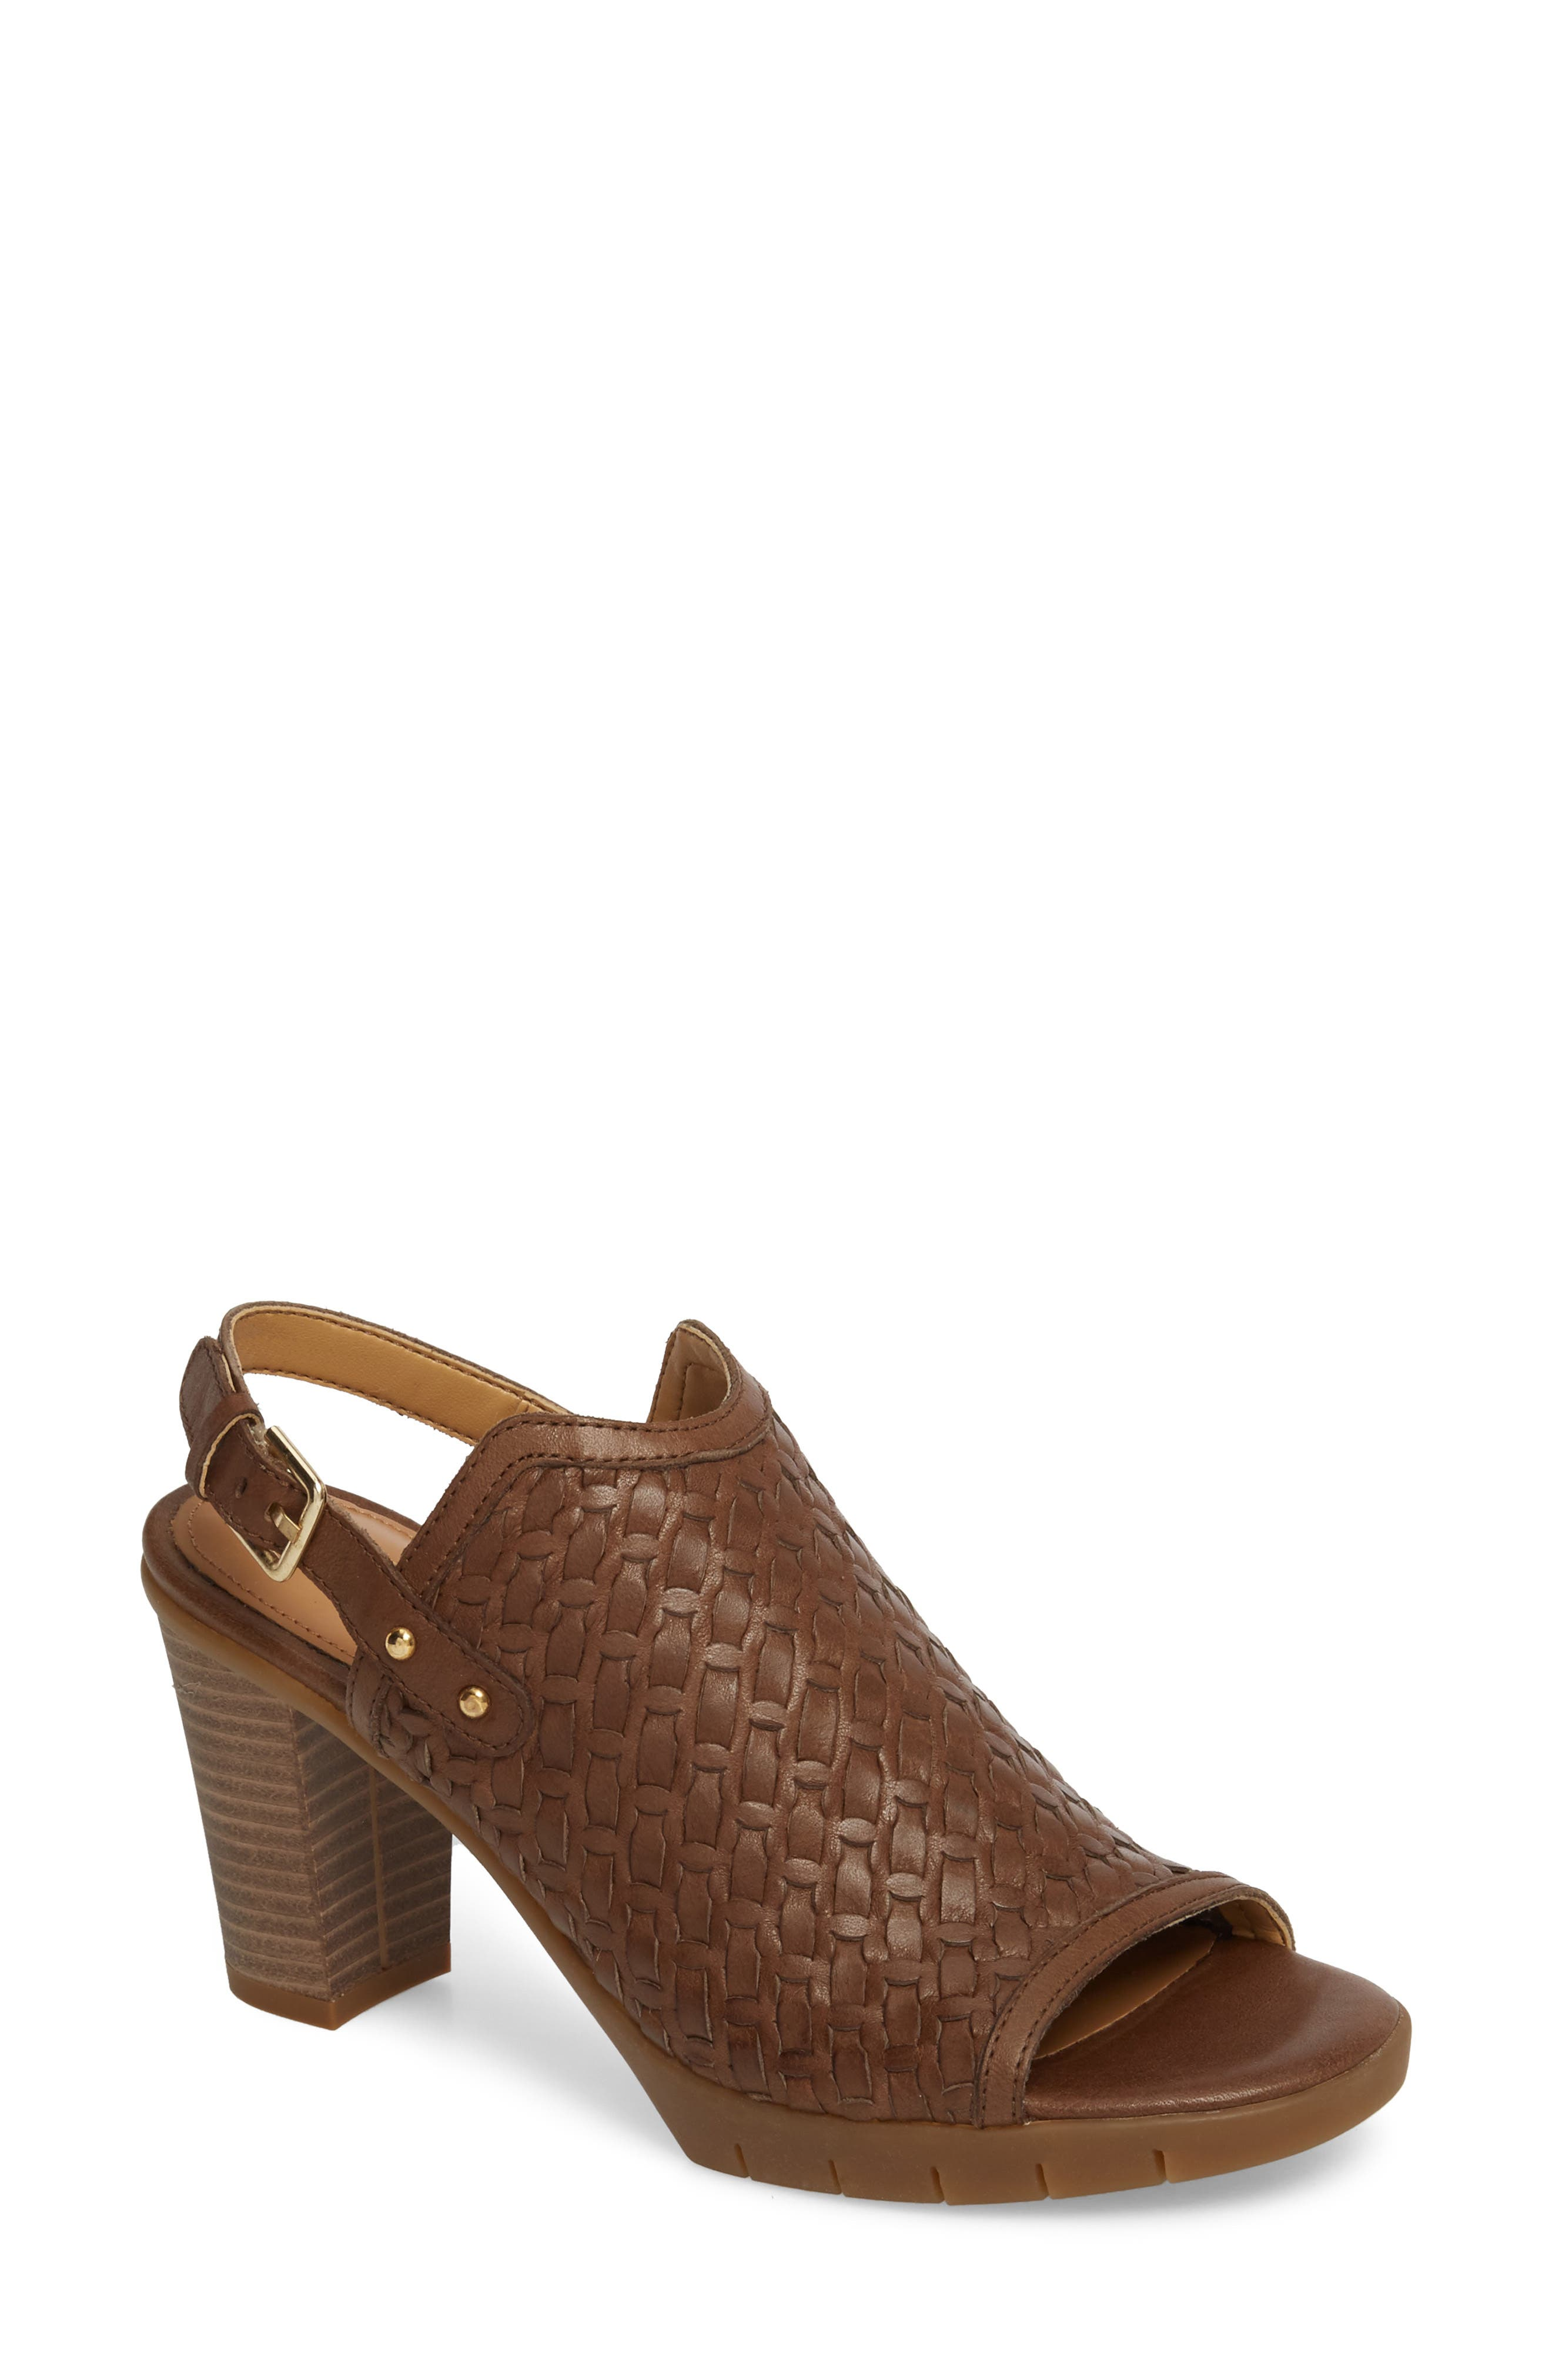 Weave Me Be Slingback Sandal,                             Main thumbnail 1, color,                             CHOCOLATE LEATHER